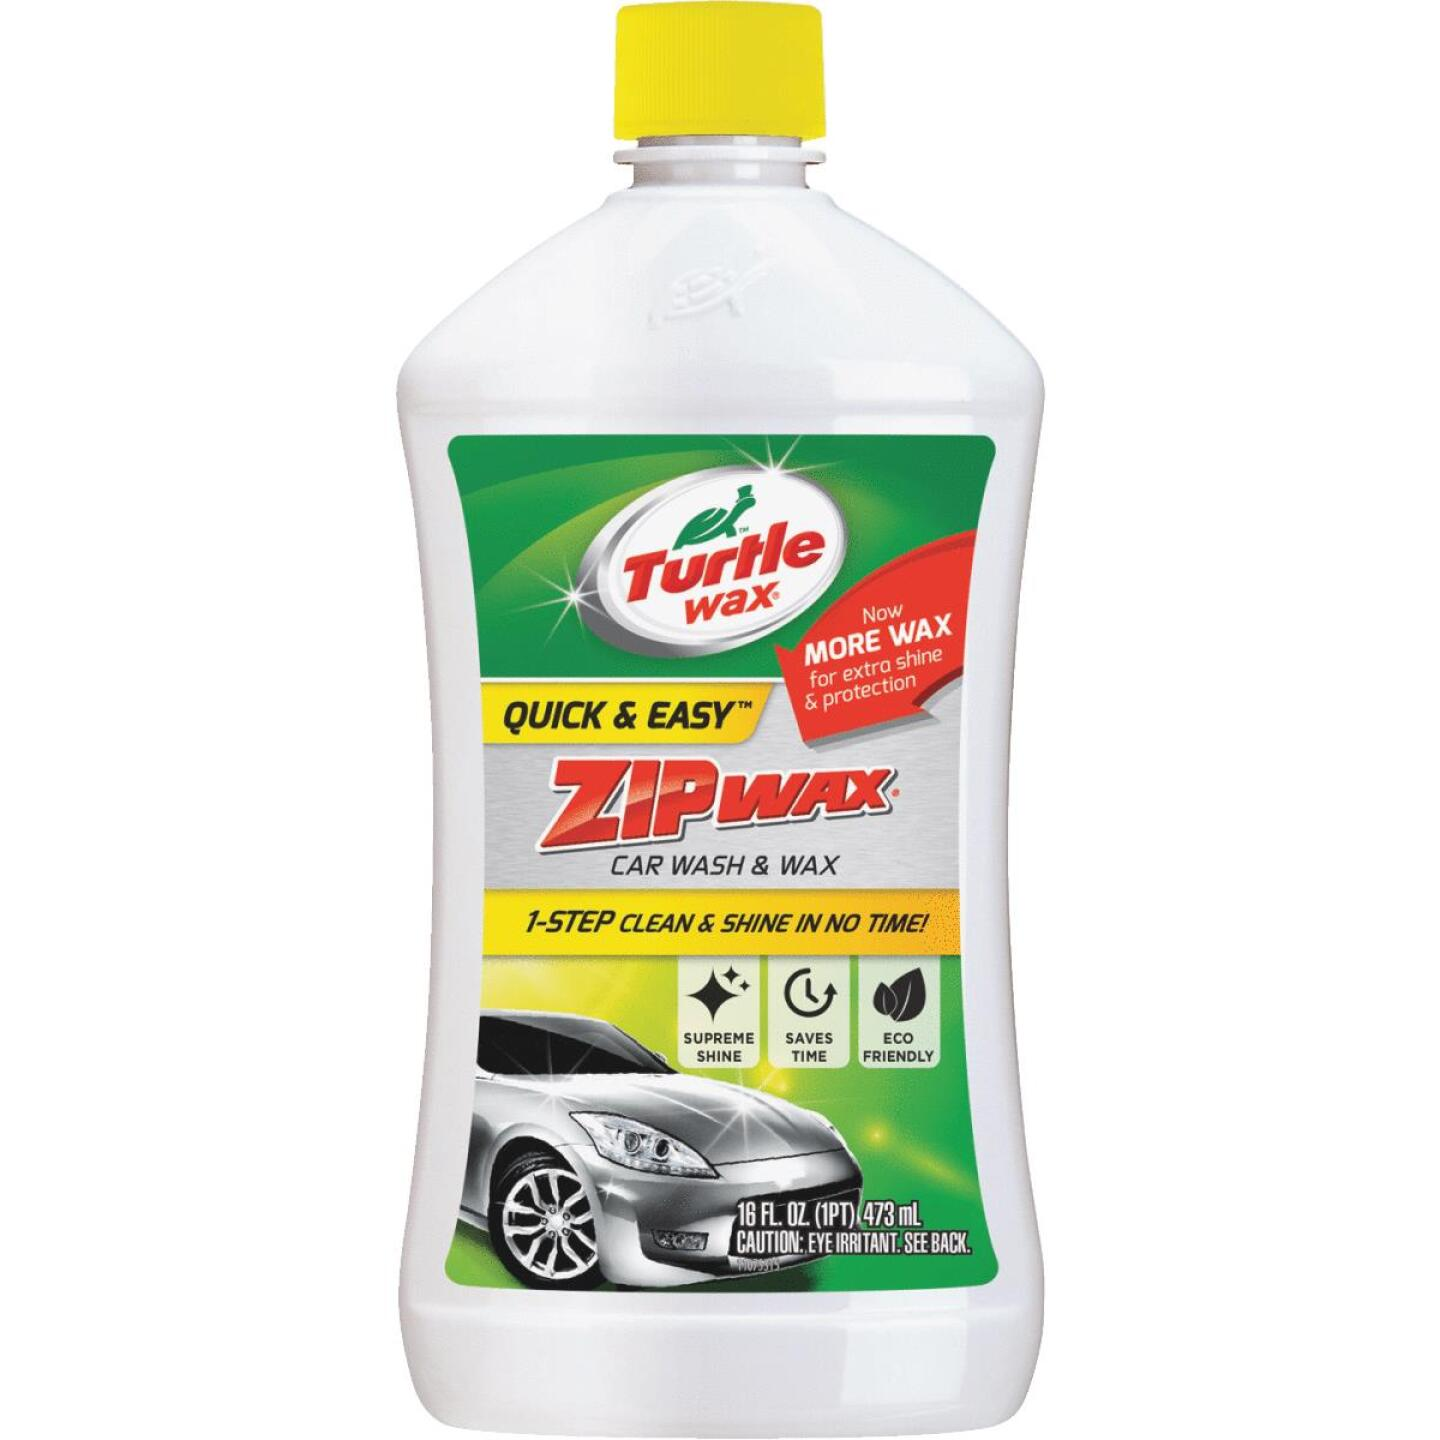 Turtle Wax Zip Wax 16 Oz. Liquid Car Wash & Wax Image 1